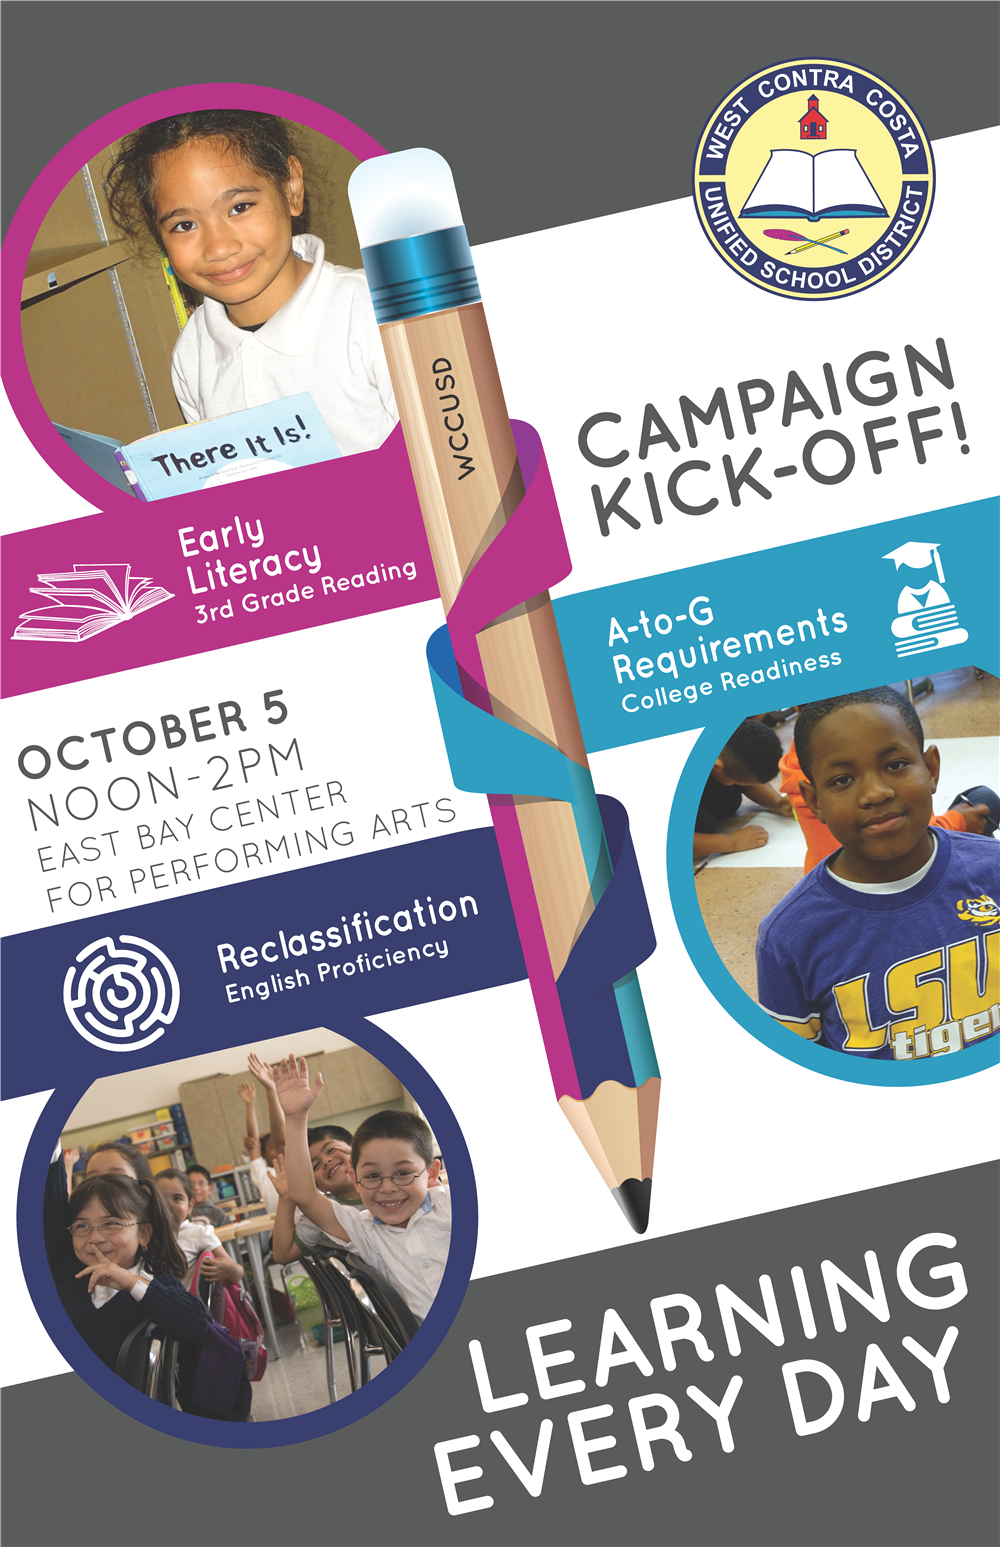 Image of Kick-off Campaign flyer